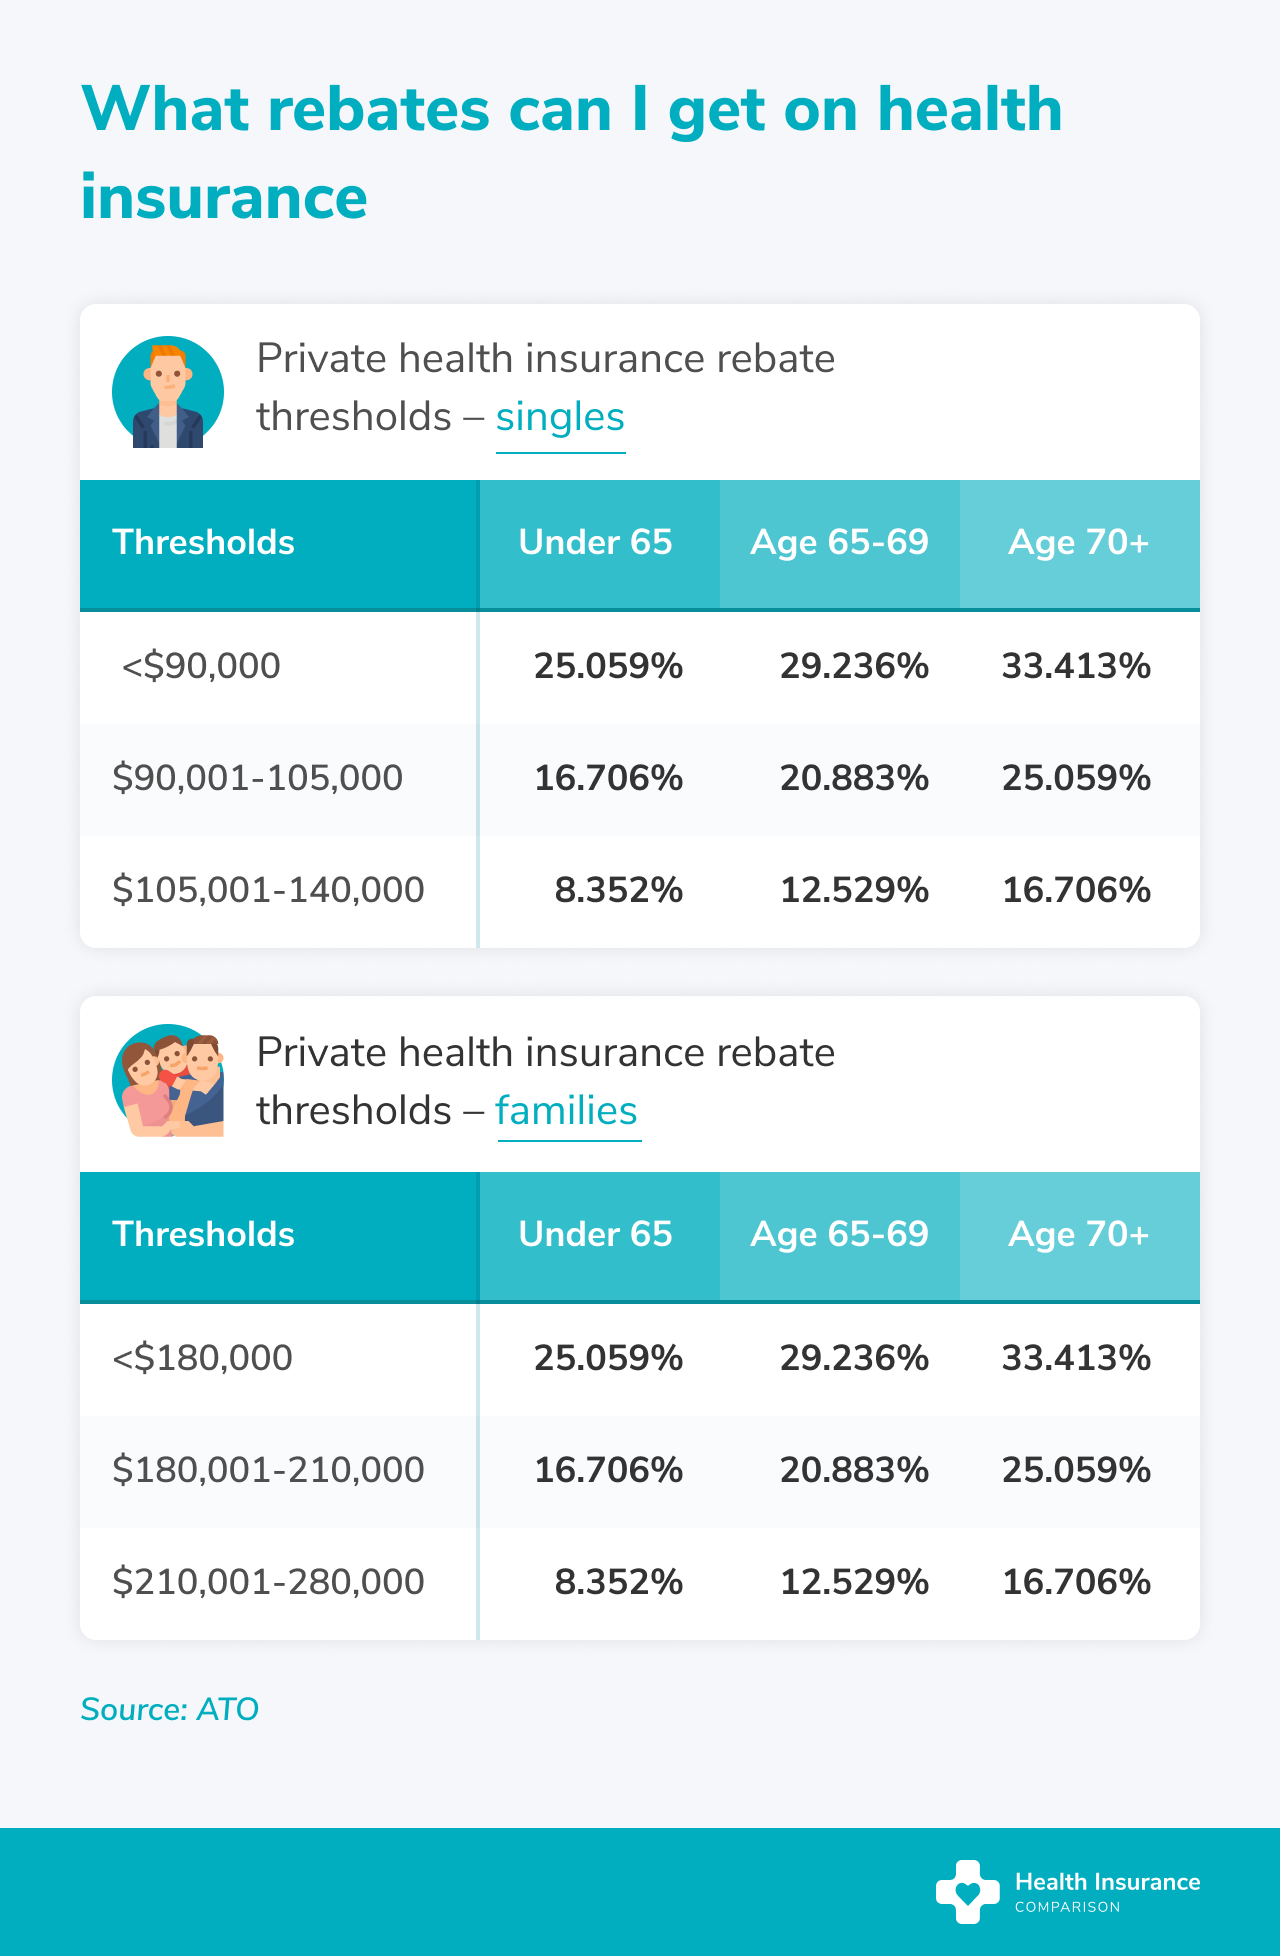 Table detailing government rebates available on private health insurance.